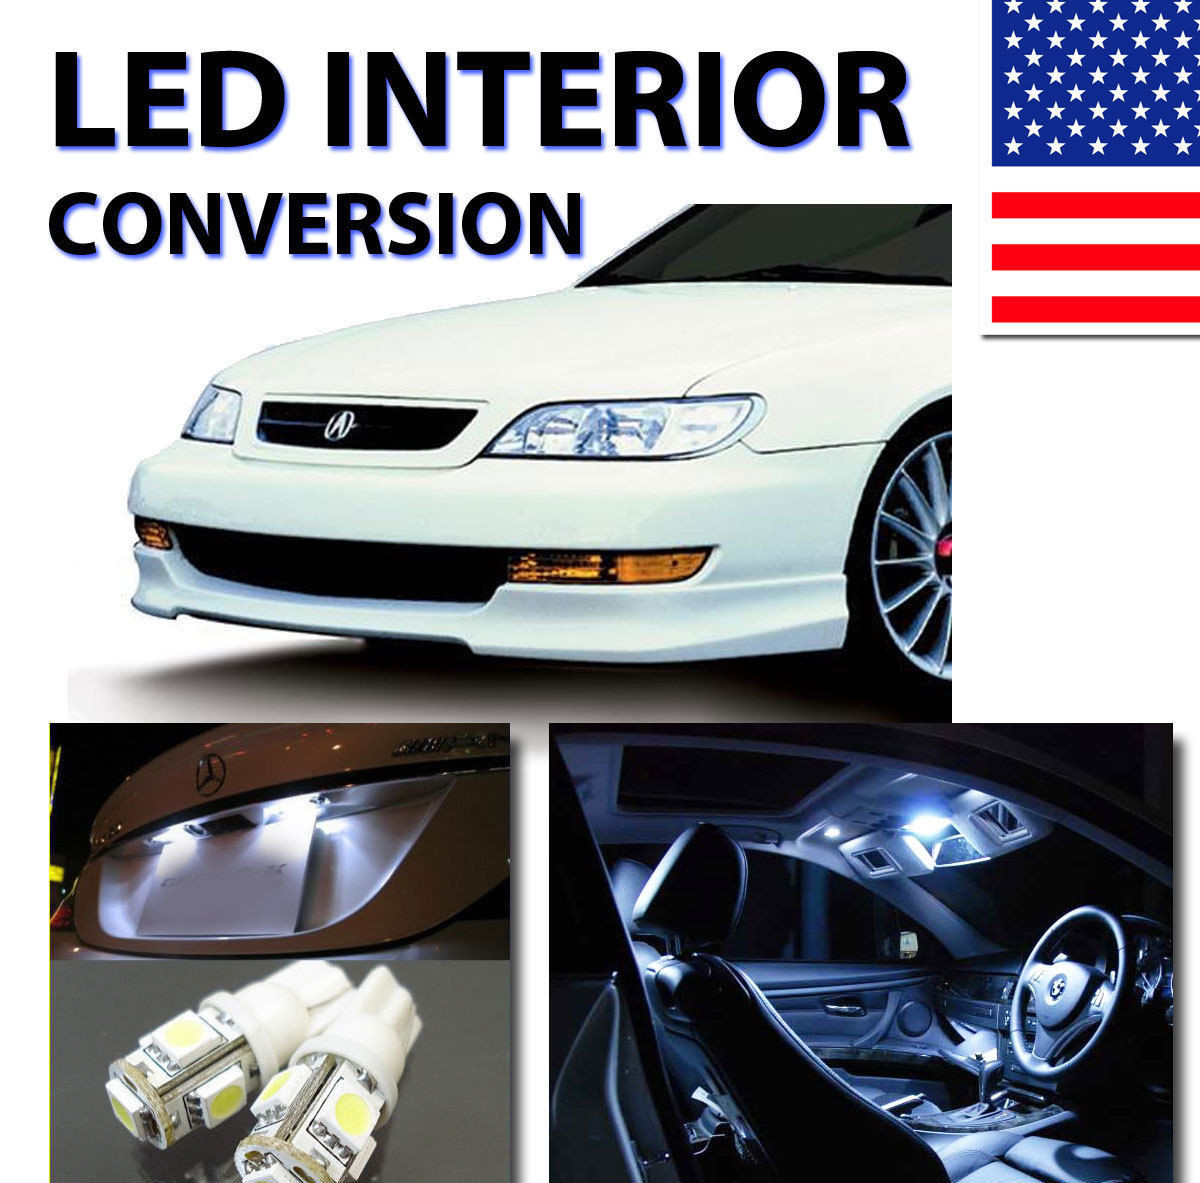 LED Interior Kit For Acura CL 1997-1999